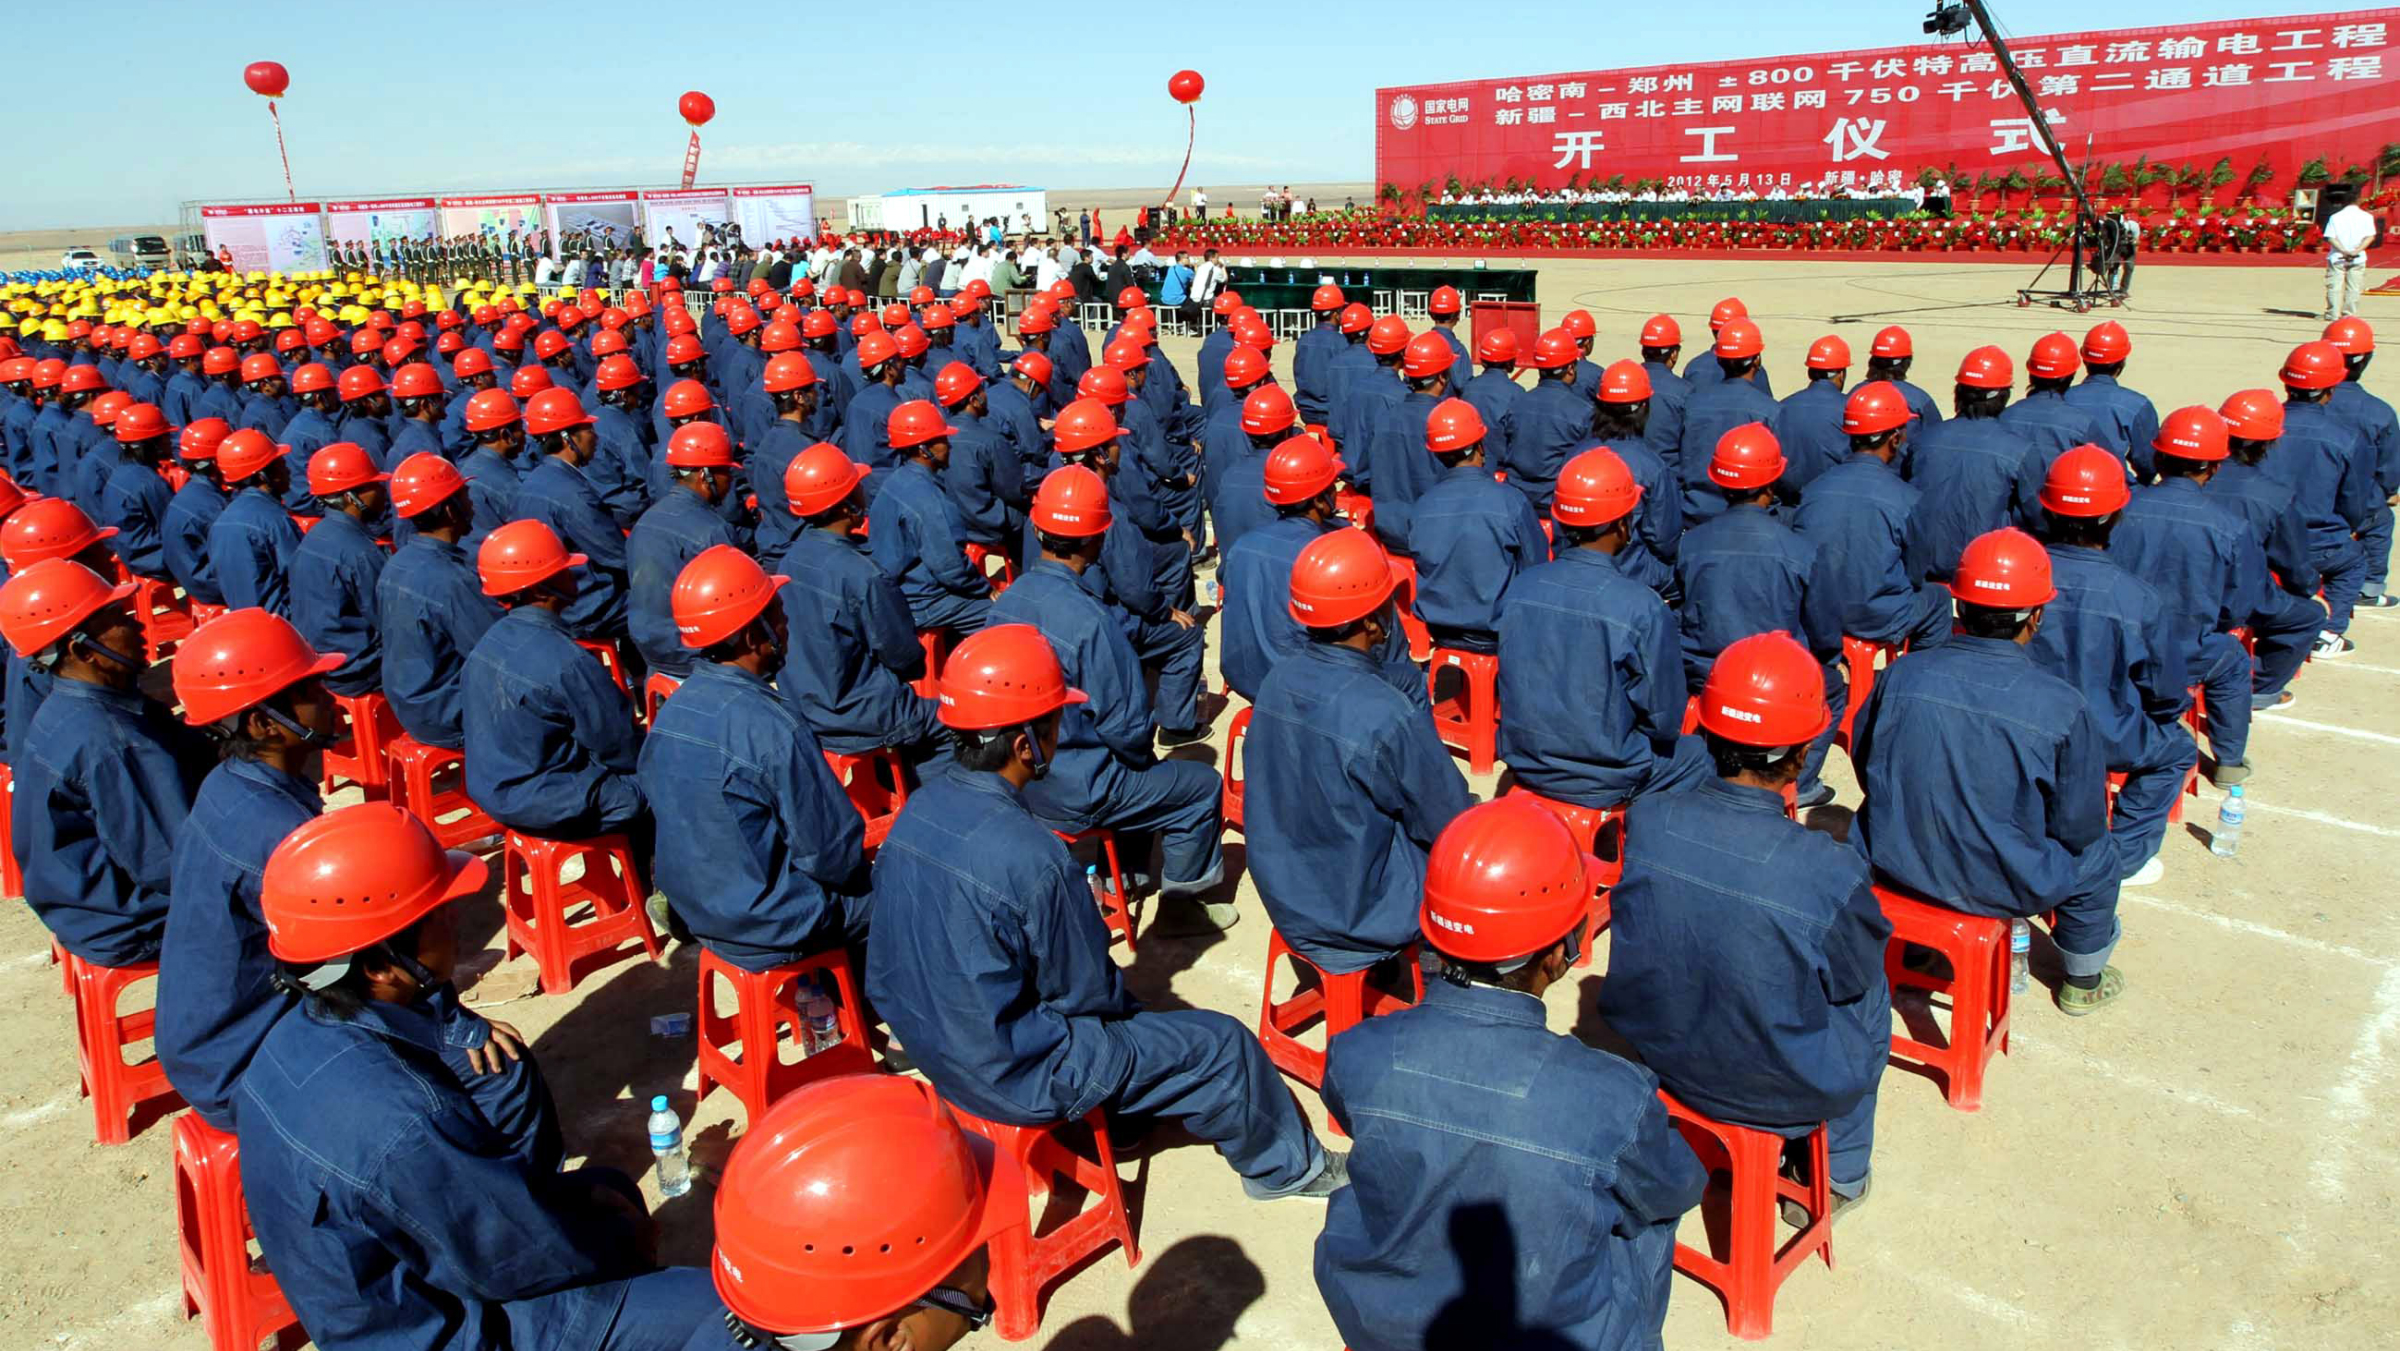 Chinese workers from the State Grid Corporation of China attend the groundbreaking ceremony for a converter station of the 800 kilovolt (kv) ultra-high voltage power line project in Hami prefecture, northwest Chinas Xinjiang province, 13 May 2012. China took a major step towards upgrading its energy infrastructure by announcing the construction of the worlds largest transmission line, a massive 800 kilovolt (kv) ultra-high voltage power line that is capable of transmitting a whopping 37 billion kWh per year. Built by the State Grid Corporation of China, the high-capacity power line will stretch 1,373 miles from Hami prefecture in northwest Chinas Xinjiang region through Gansu, Shaanxi, Ningxia and Shanxi before finishing in Zhengzhou, the capital of central Chinese province of Henan. The power line costs 23.39 billion yuan (US$3.7 bn). Once it is completed in 2014, it will have a world record capacity of eight million kW.(Imaginechina via AP Images